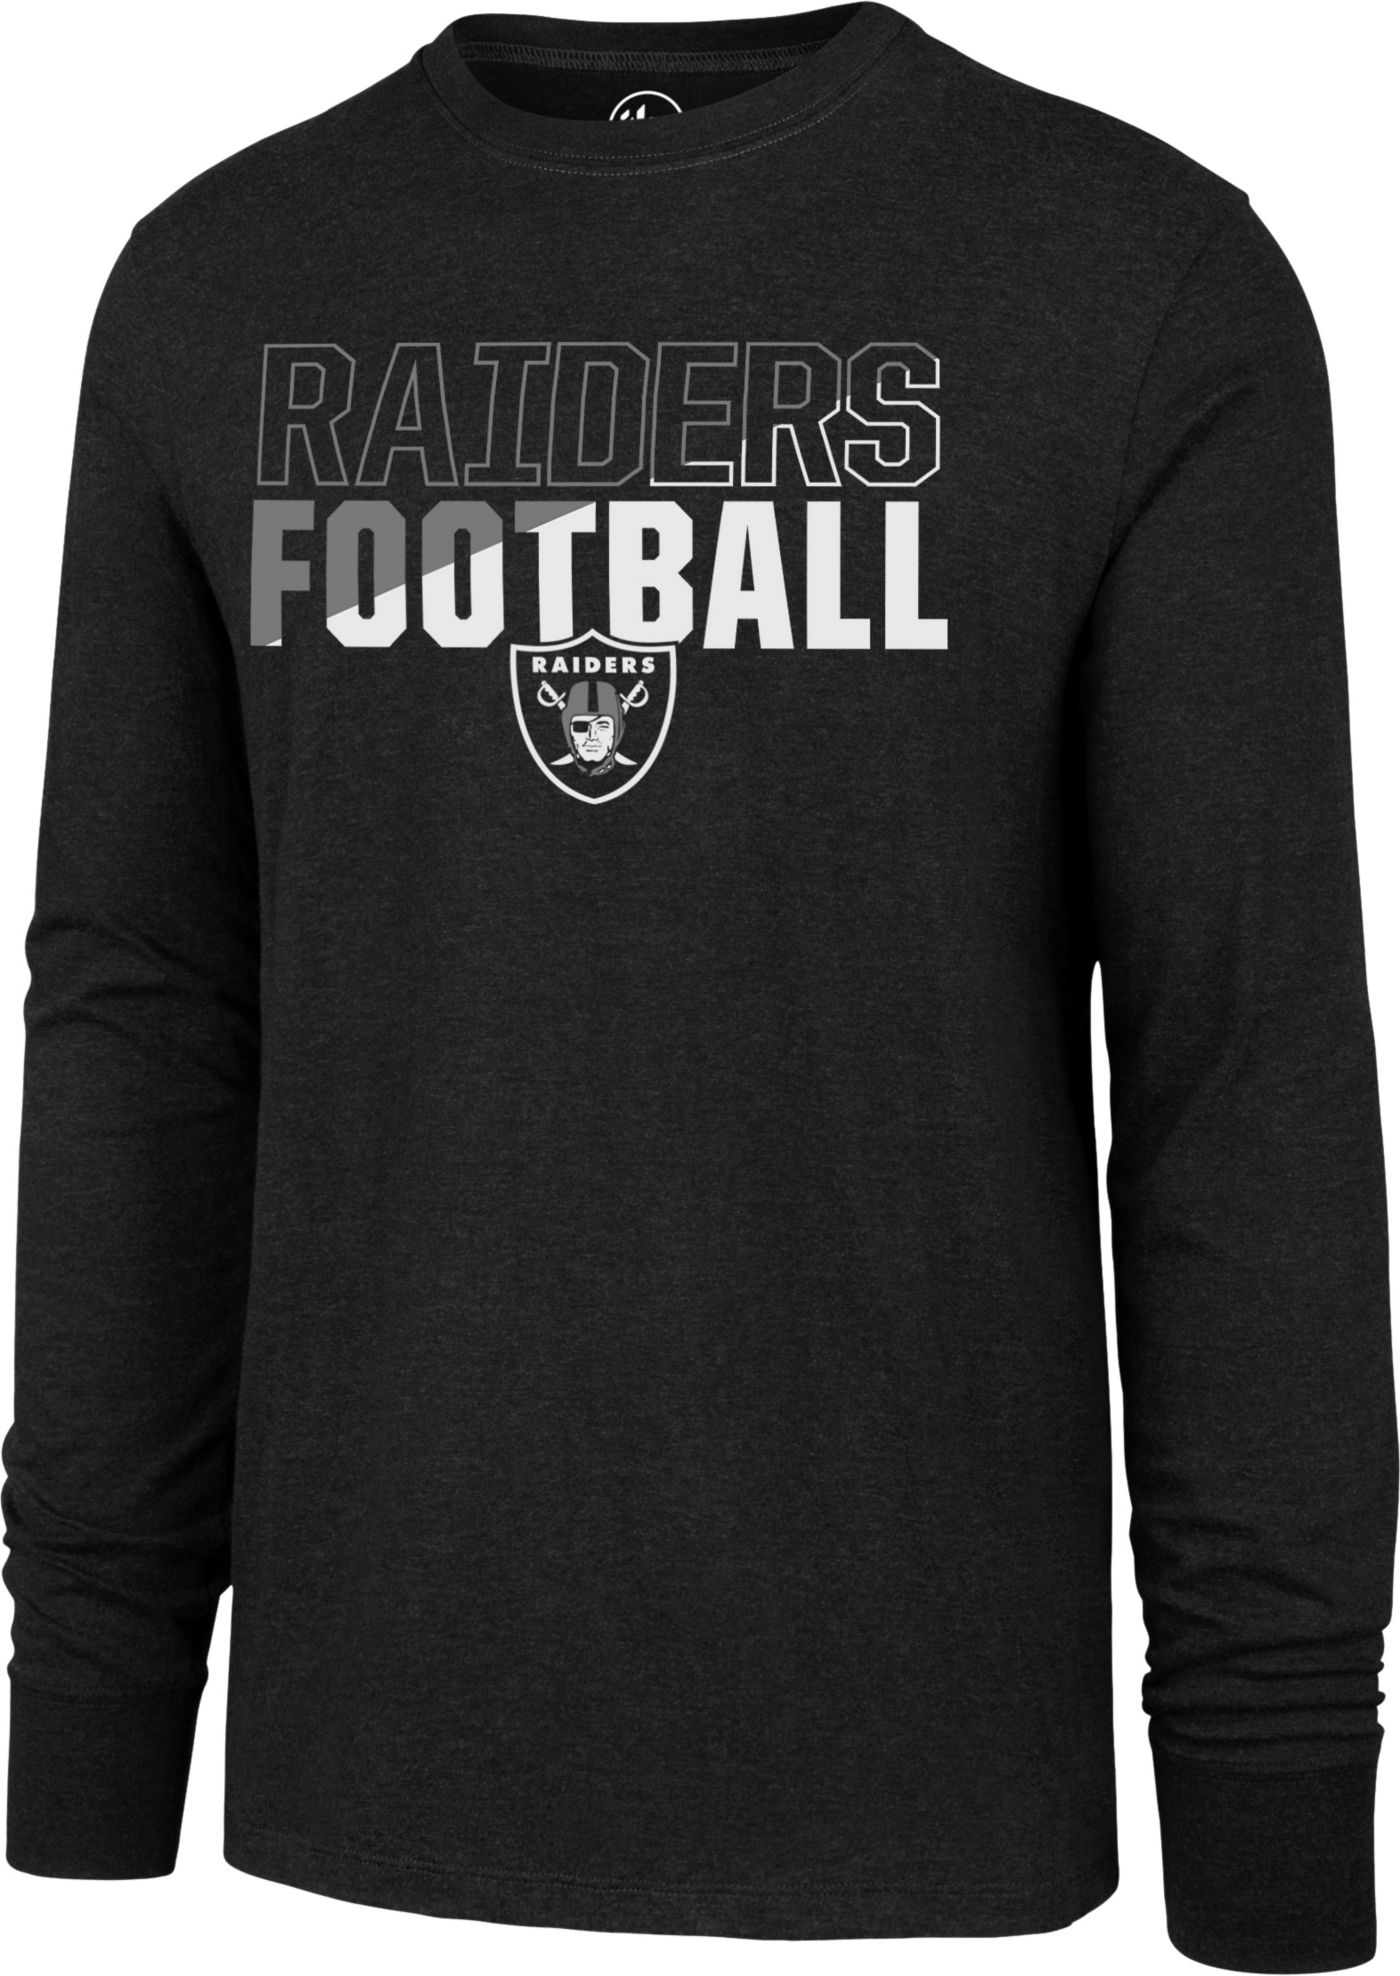 '47 Men's Oakland Raiders Club Long Sleeve Black Shirt